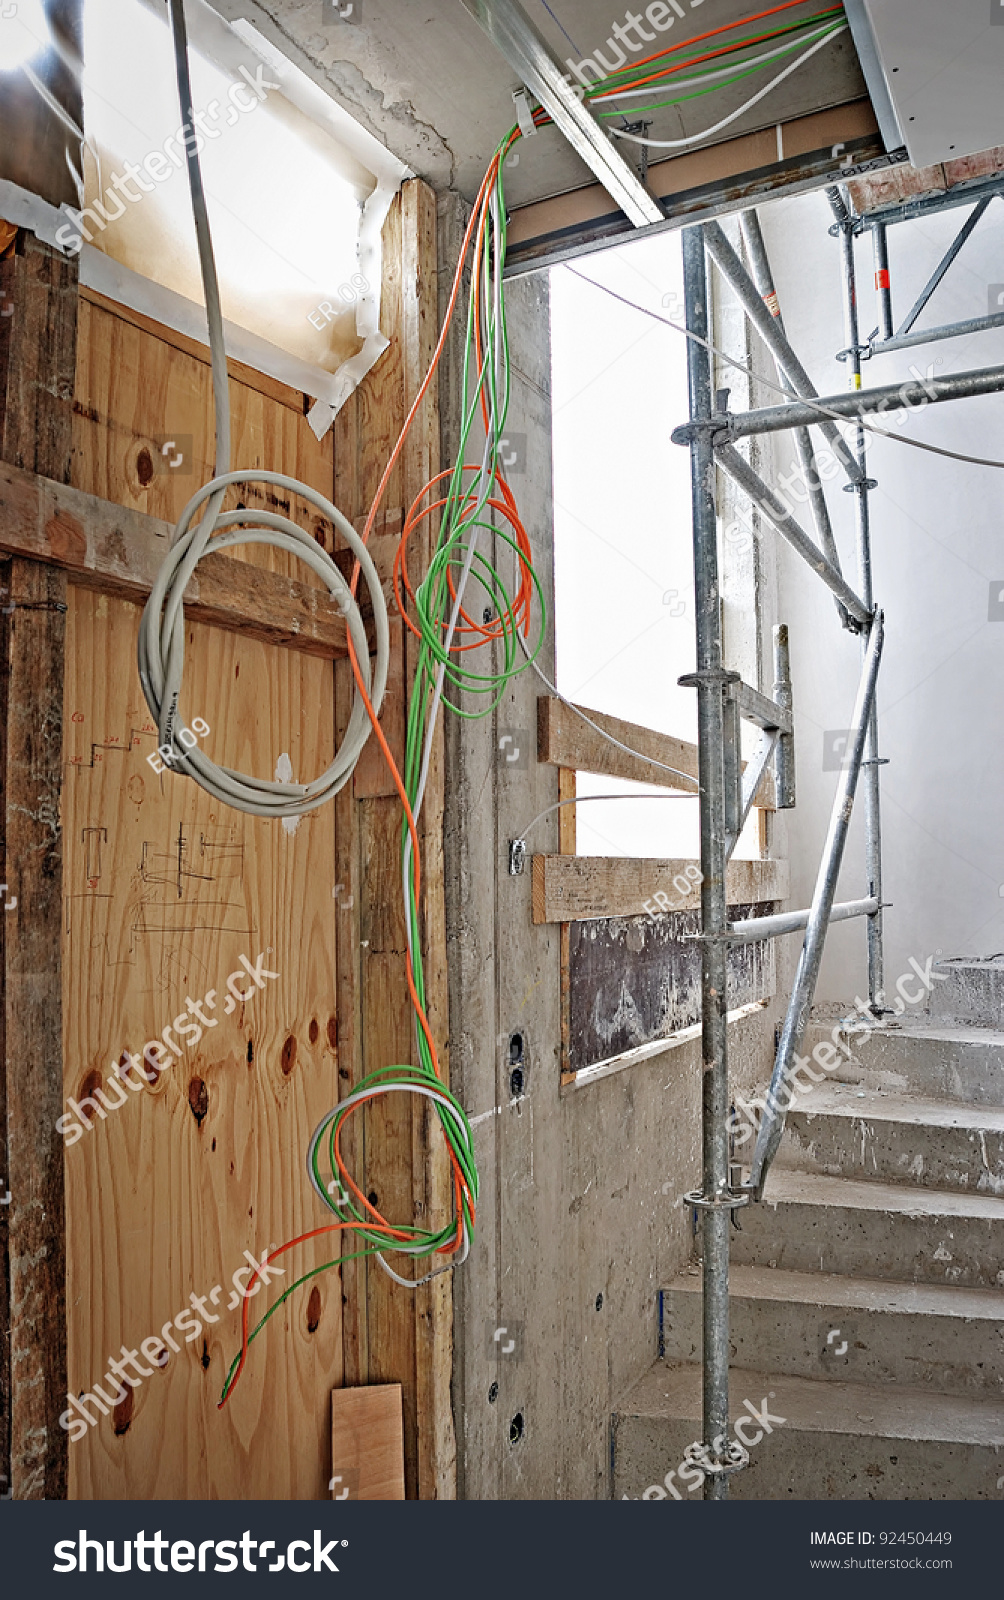 Interior construction building site and electrical for Interior site